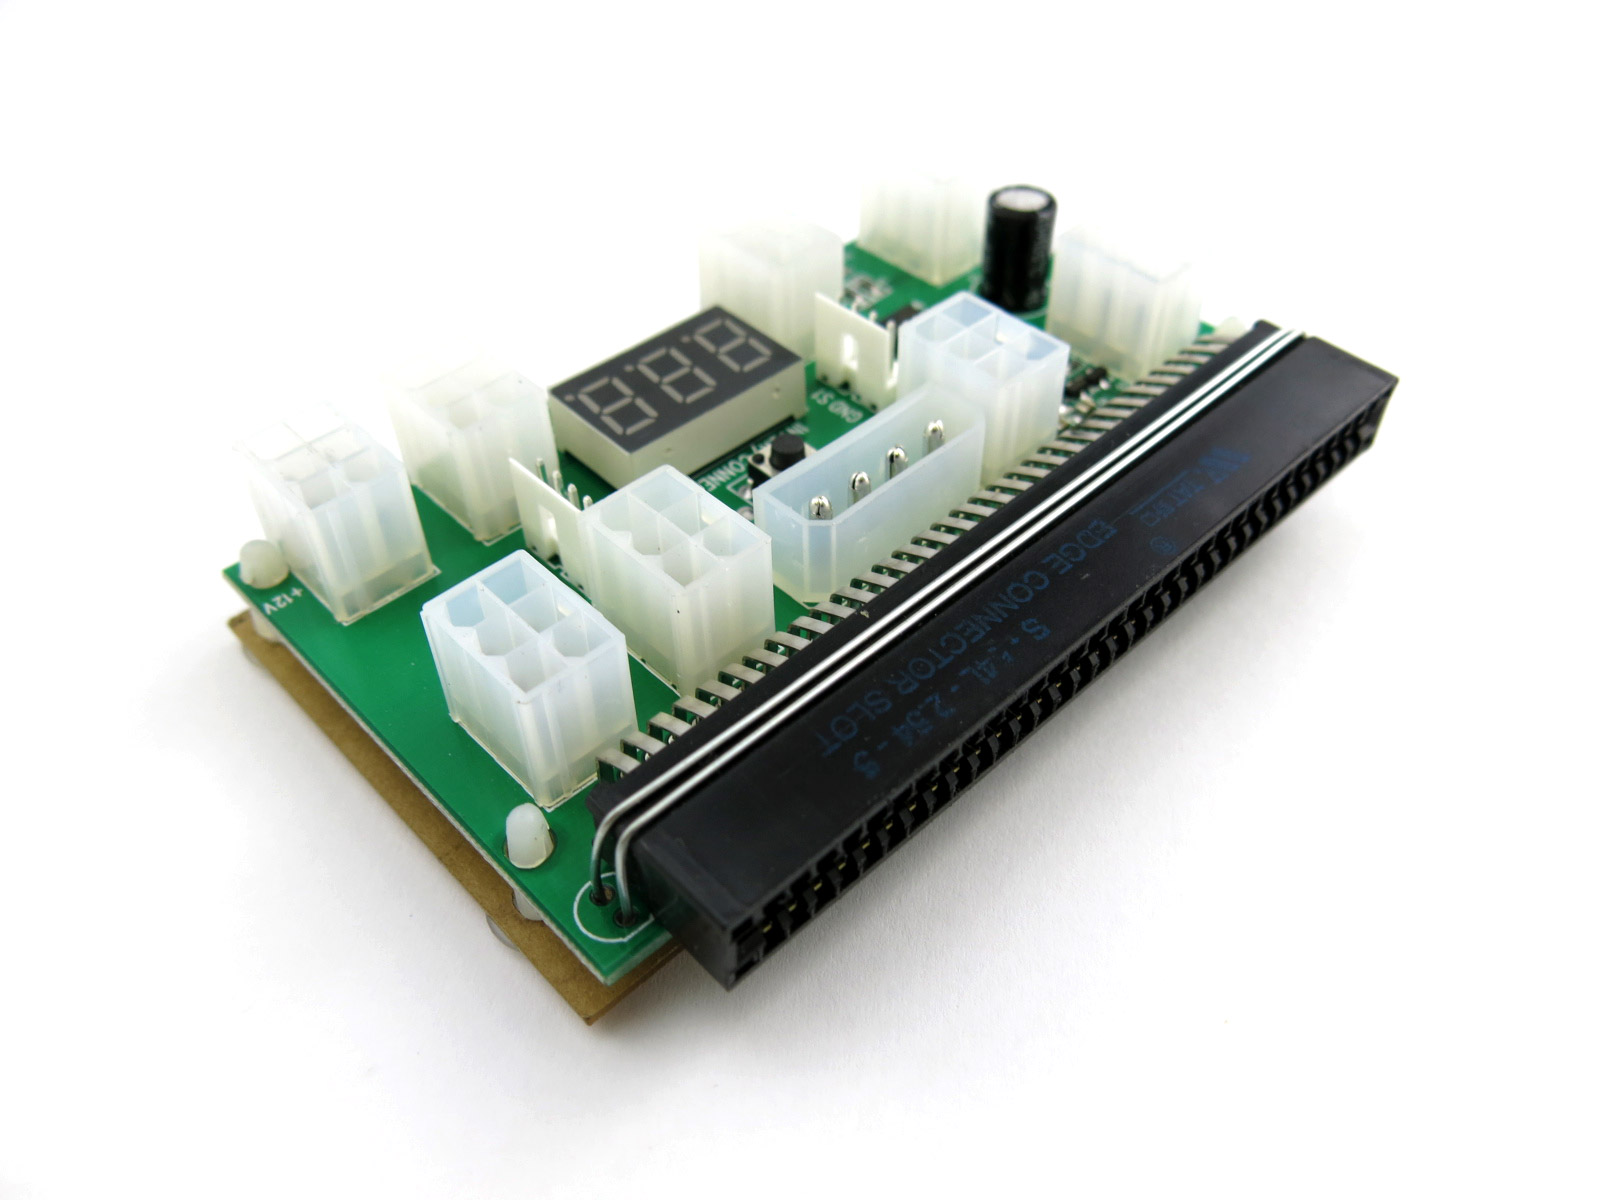 Mine bitcoin with the X6B Breakout board featuring (8) PCIe ports, LED voltage meter, on/off power button, molex port, and (2) 4 pin ports